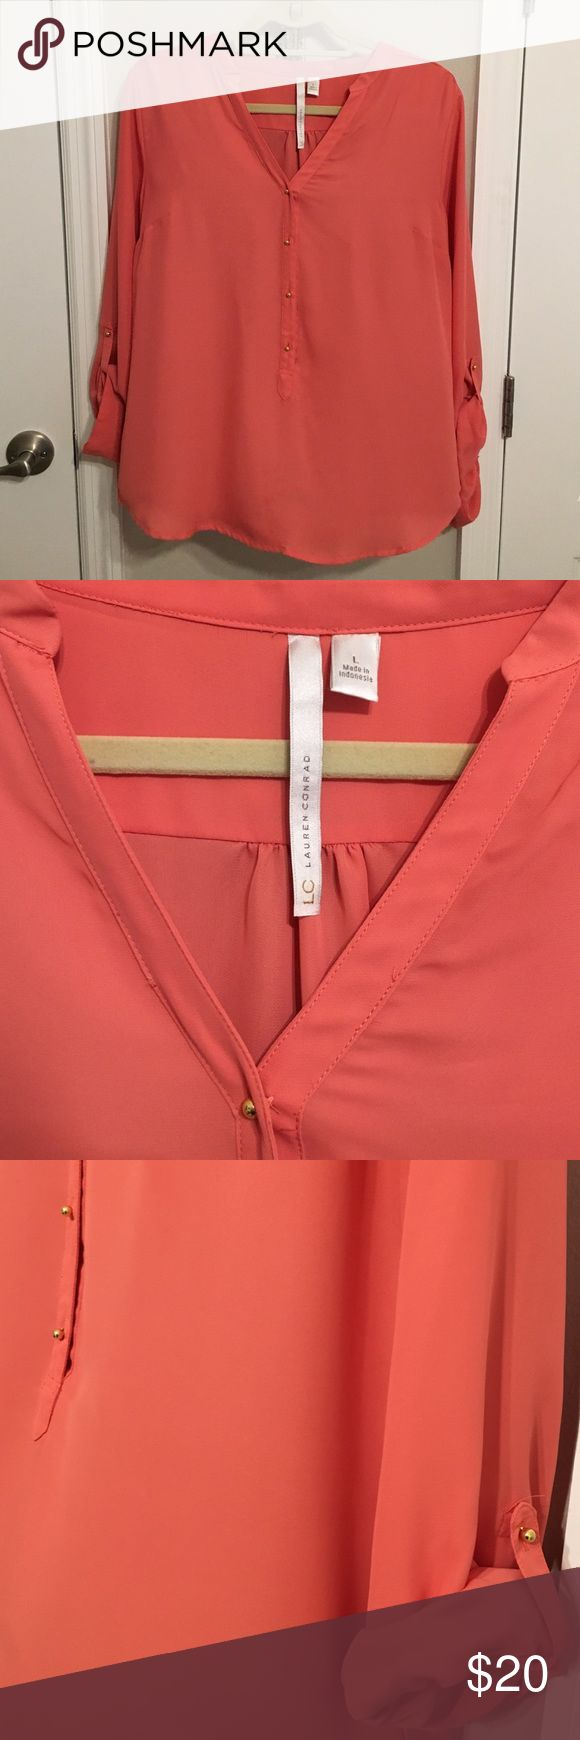 LC Lauren Conrad Coral Blouse Lightweight coral blouse with gold accent buttons. Perfect for spring and summer to dress up any look! LC Lauren Conrad Tops Button Down Shirts